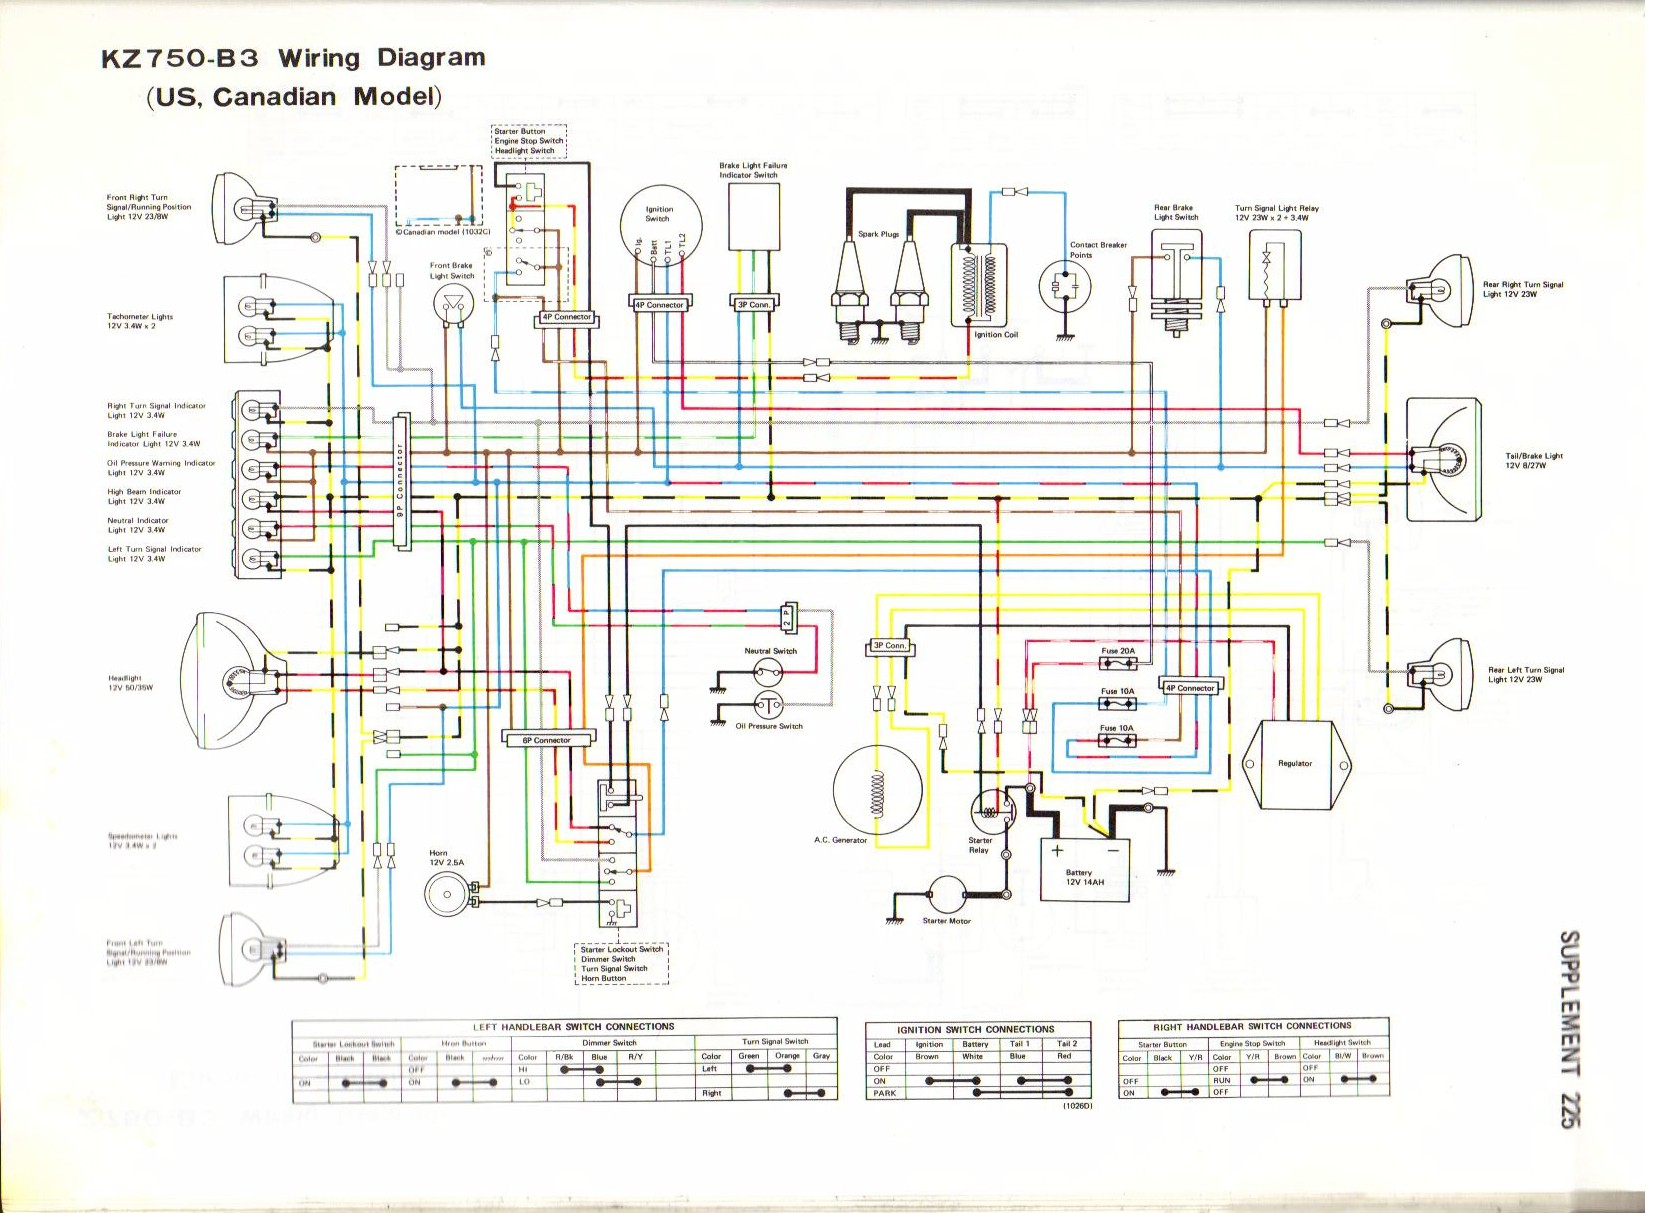 [DIAGRAM_09CH]  2004 Zx10r Wiring Diagram - Zx9r Fuel Pump Relay Wiring Harness for Wiring  Diagram Schematics | 04 Zx10 Wiring Diagram |  | Wiring Diagram Schematics